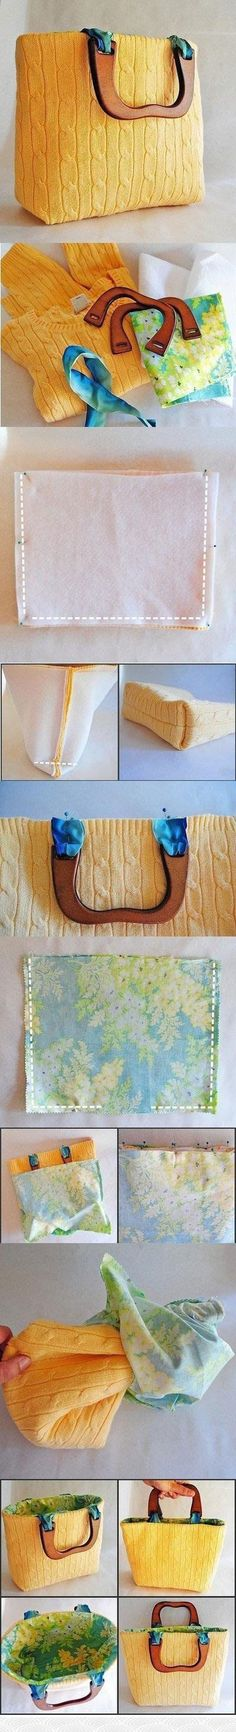 DIY: Stunning Fashion Ideas